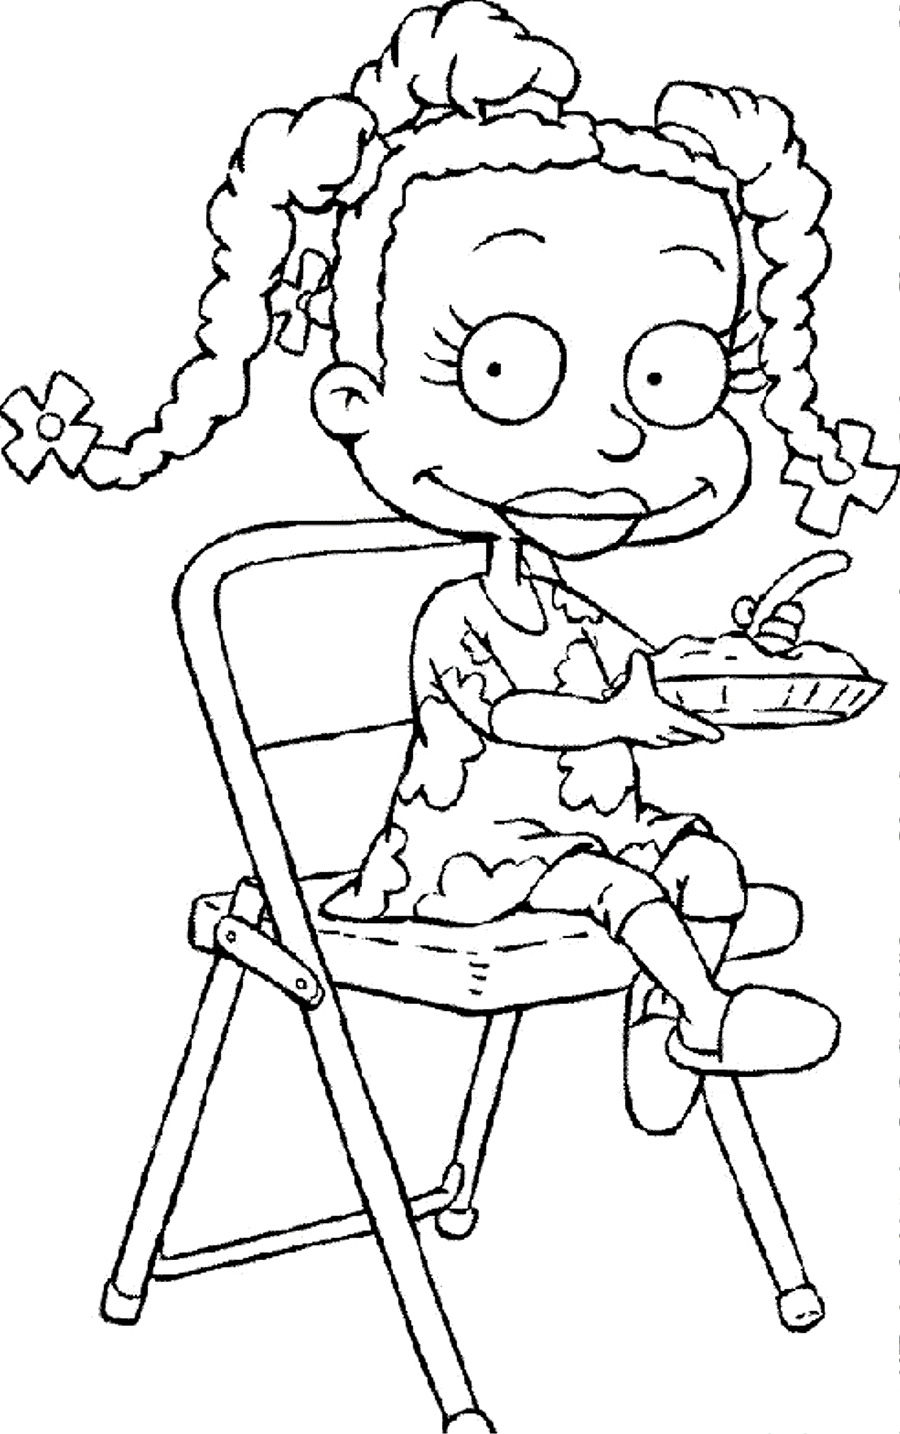 rugrats coloring printable pages - photo#9